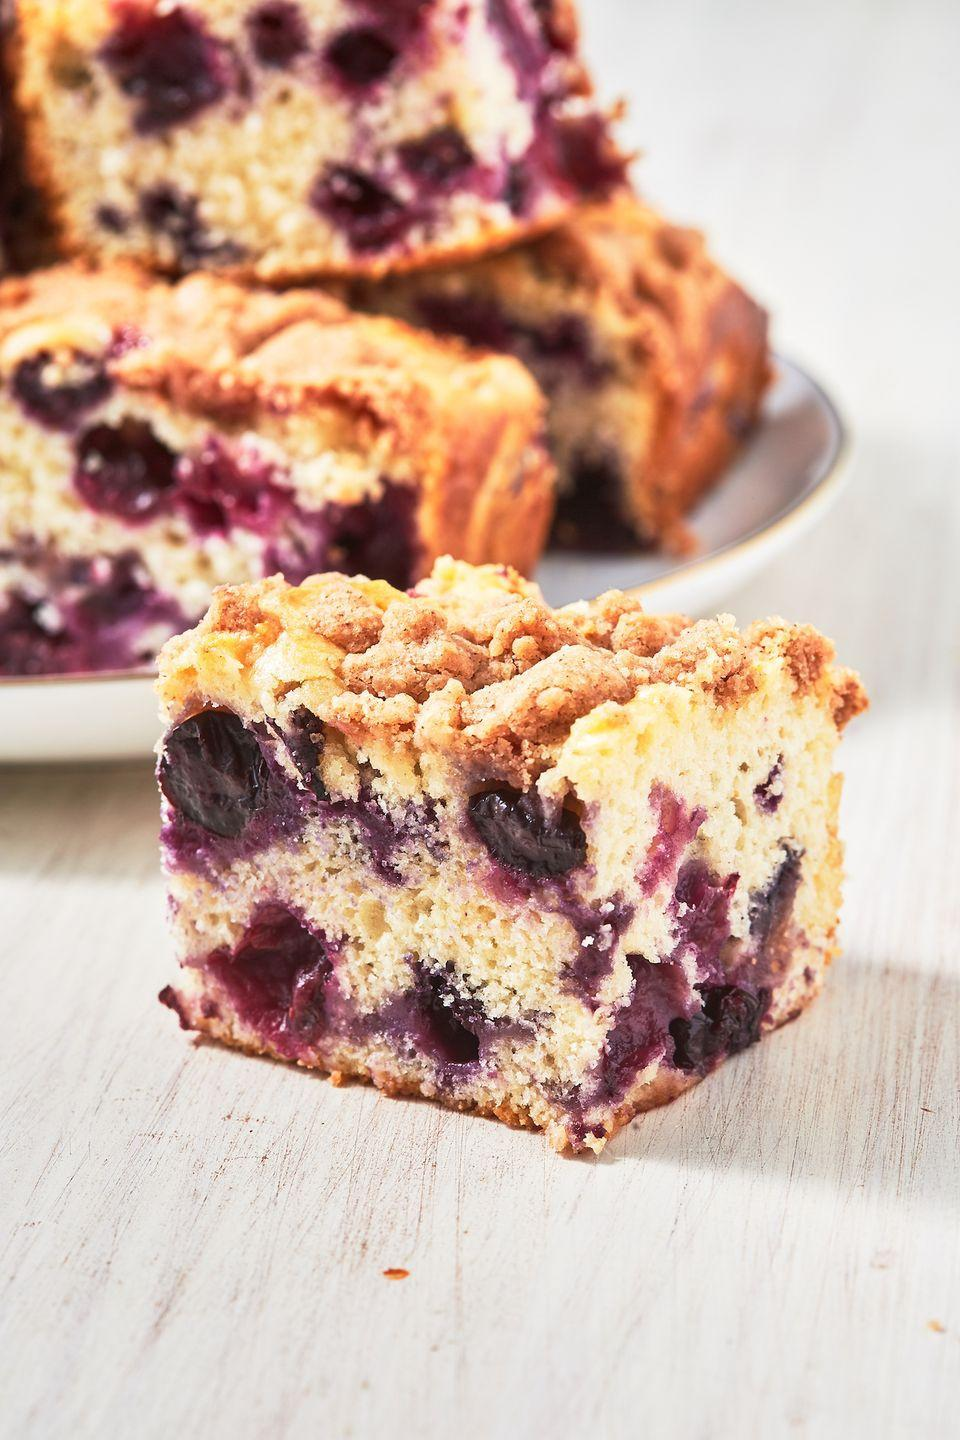 """<p>Cake for breakfast anyone?</p><p>Get the recipe from <a href=""""https://www.delish.com/cooking/recipe-ideas/a27920478/blueberry-buckle-recipe/"""" rel=""""nofollow noopener"""" target=""""_blank"""" data-ylk=""""slk:Delish"""" class=""""link rapid-noclick-resp"""">Delish</a>.</p>"""